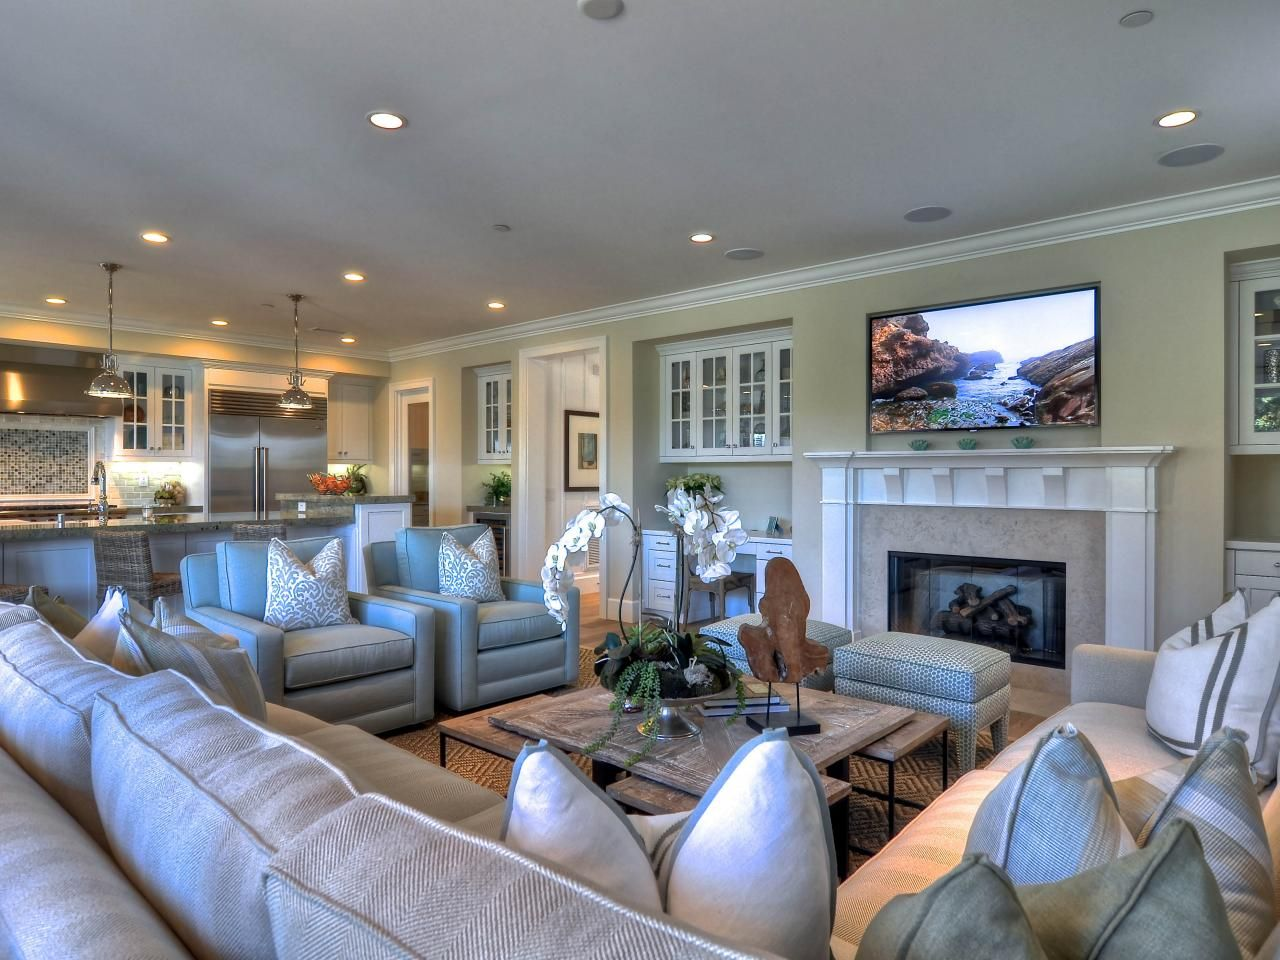 Coastal decor is found in the details in this spacious for Big furniture small living room